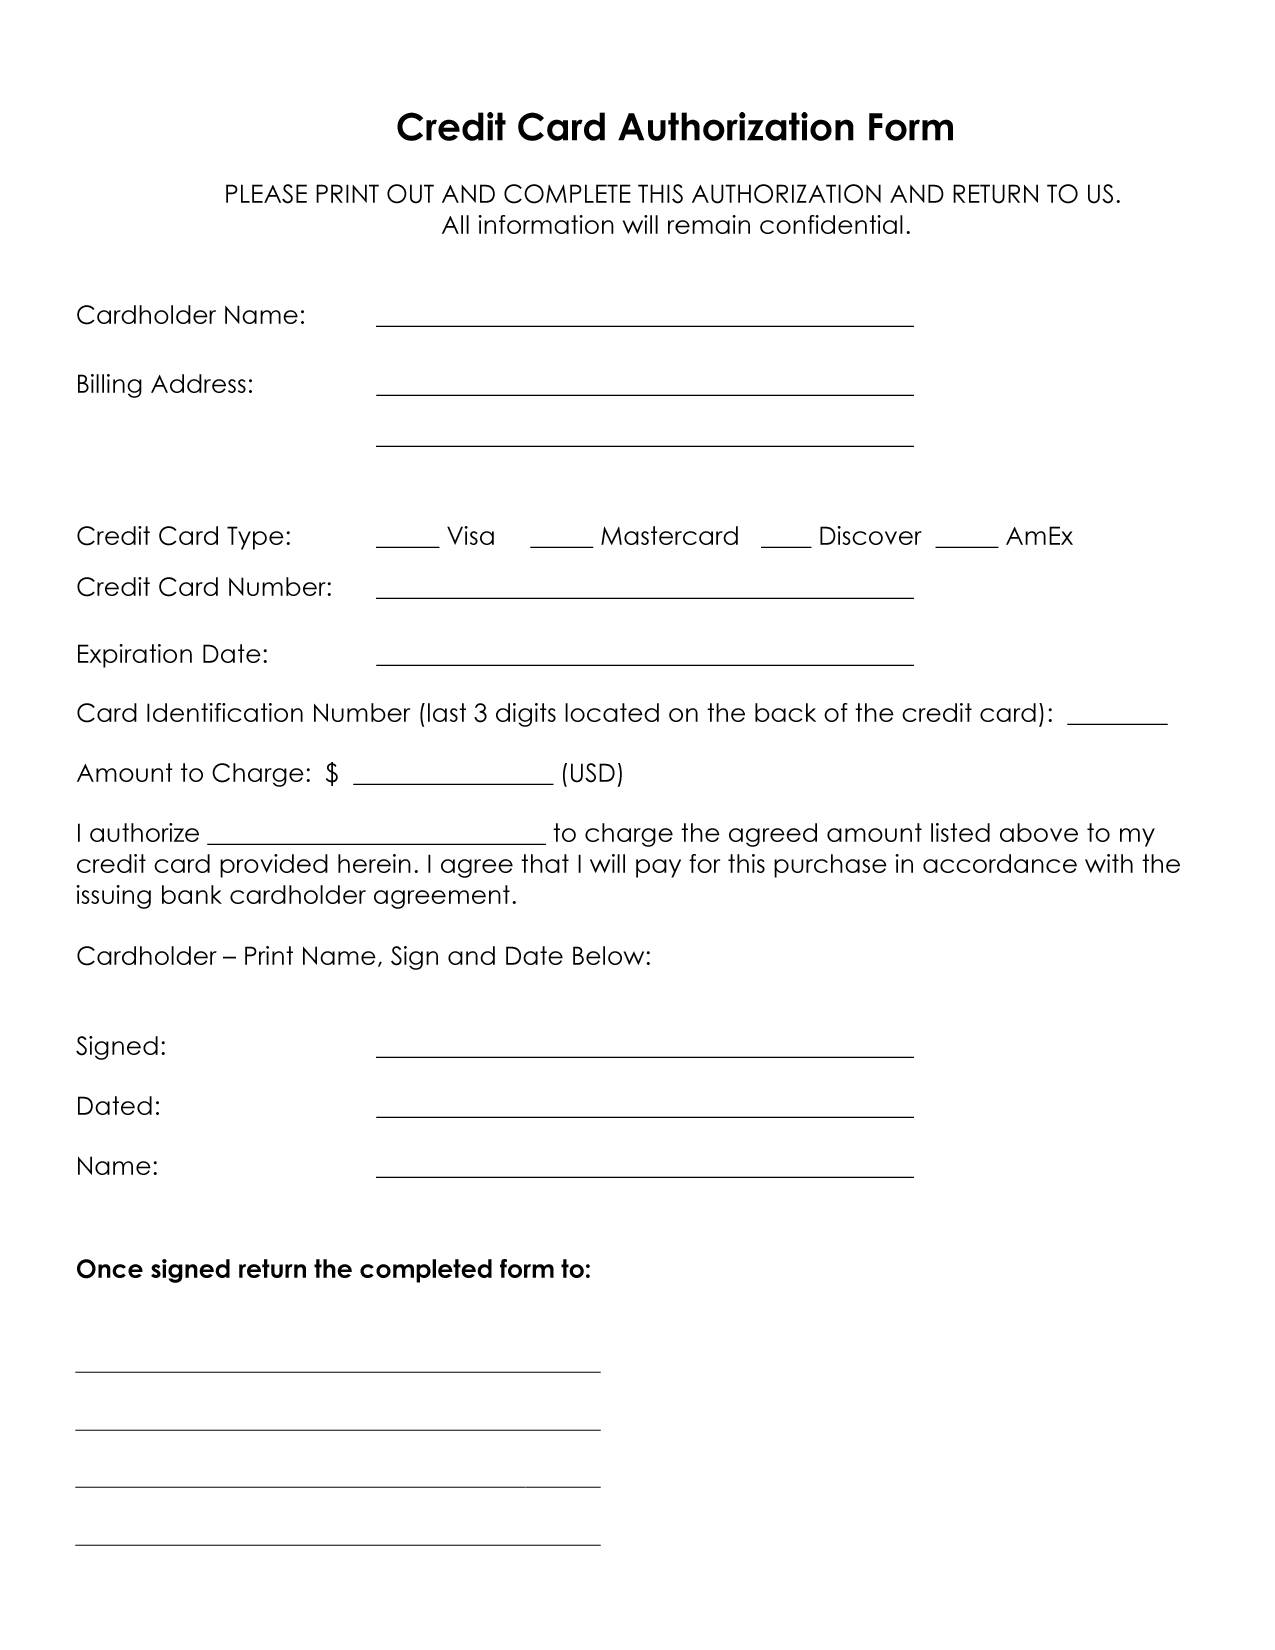 Credit Card Payment Form Template charlotte clergy coalition